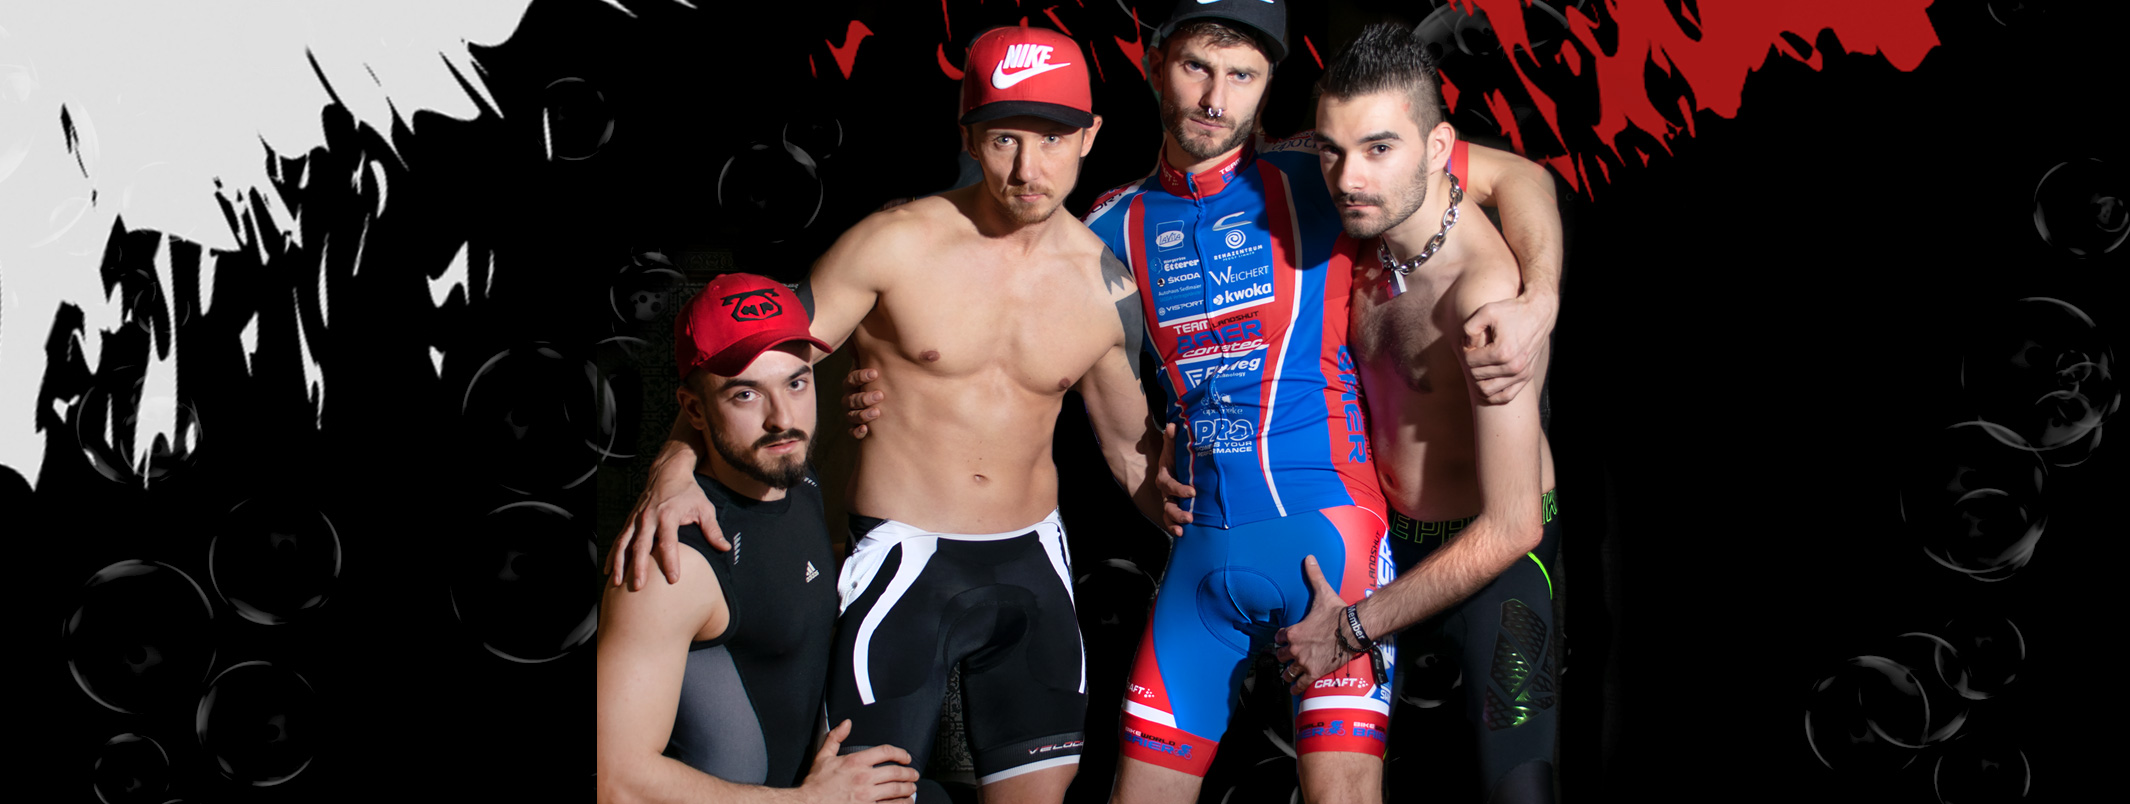 A digital get-together for all lycra gearhounds